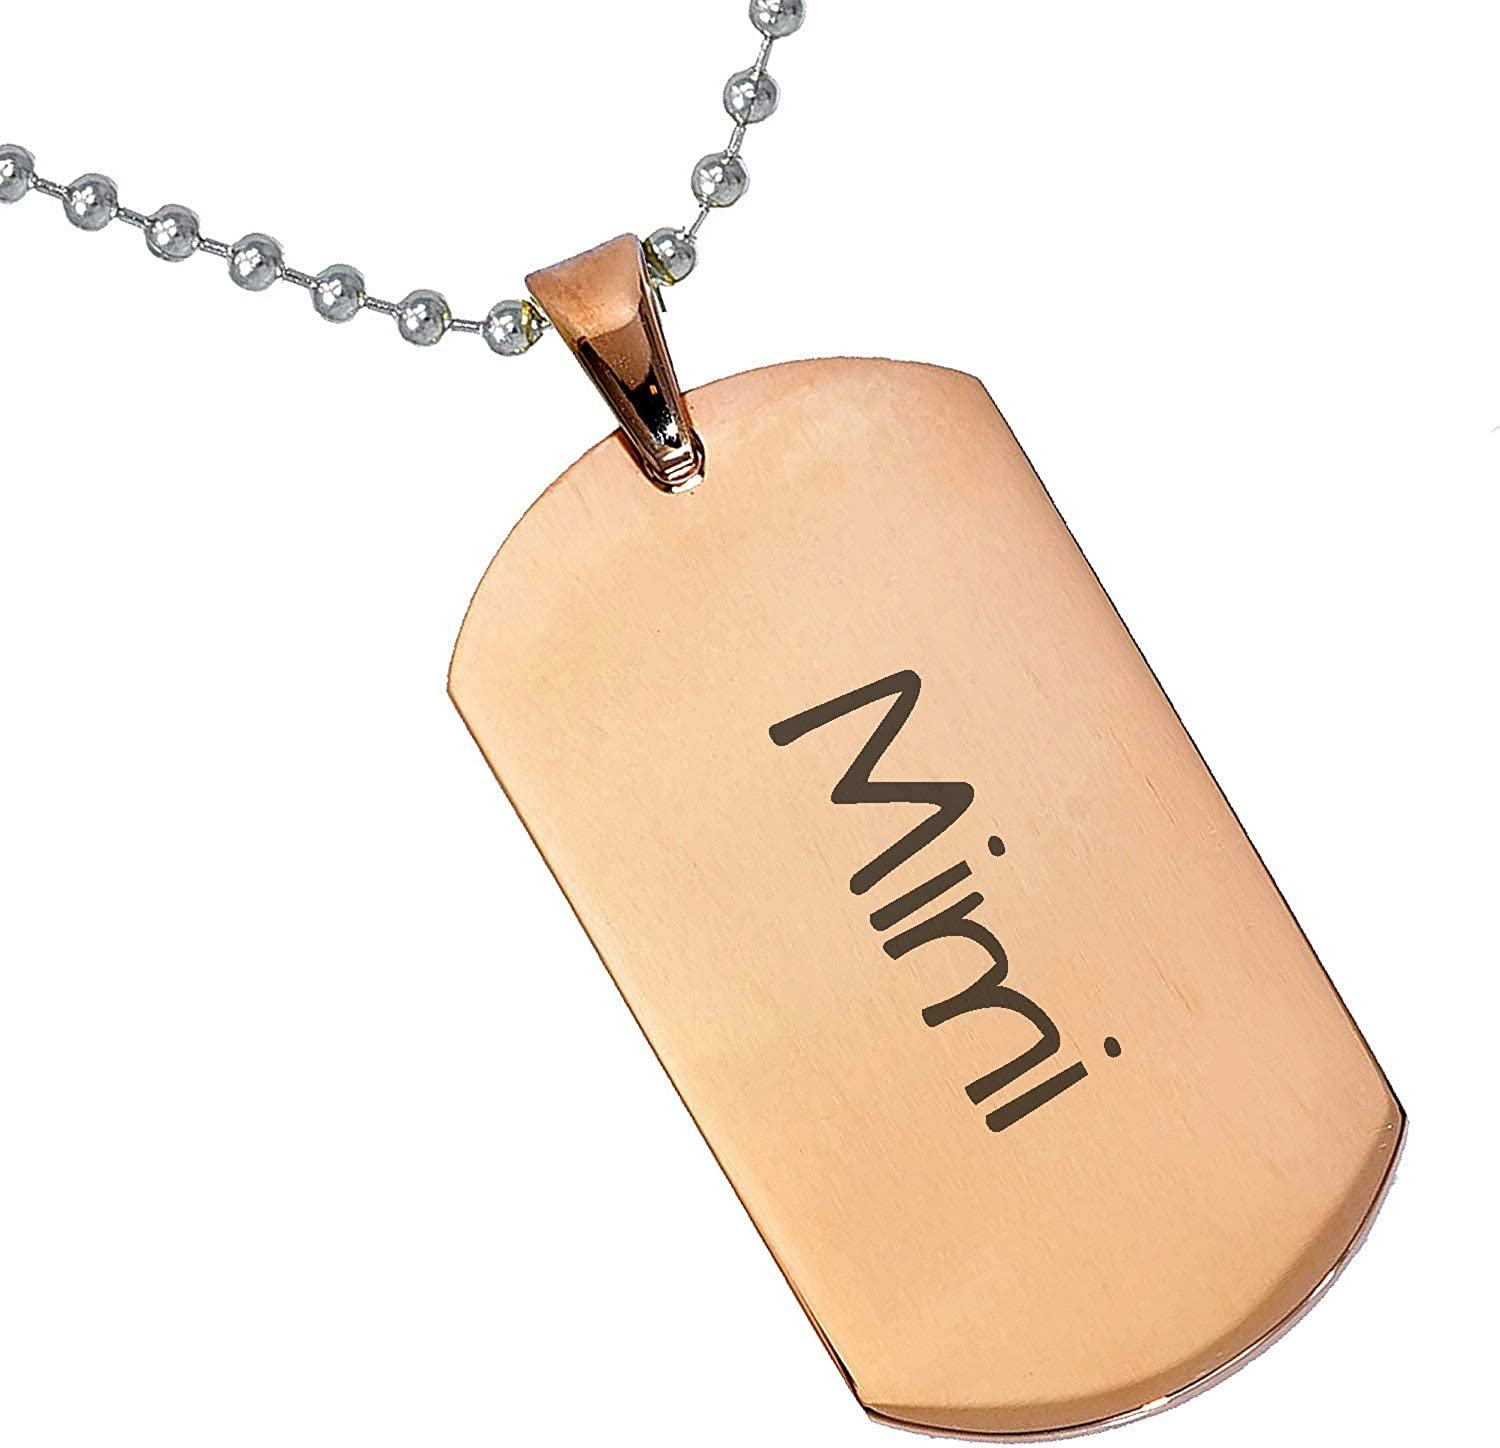 Stainless Steel Silver Gold Black Rose Gold Color Baby Name Mimi Engraved Personalized Gifts For Son Daughter Boyfriend Girlfriend Initial Customizable Pendant Necklace Dog Tags 24 Ball Chain